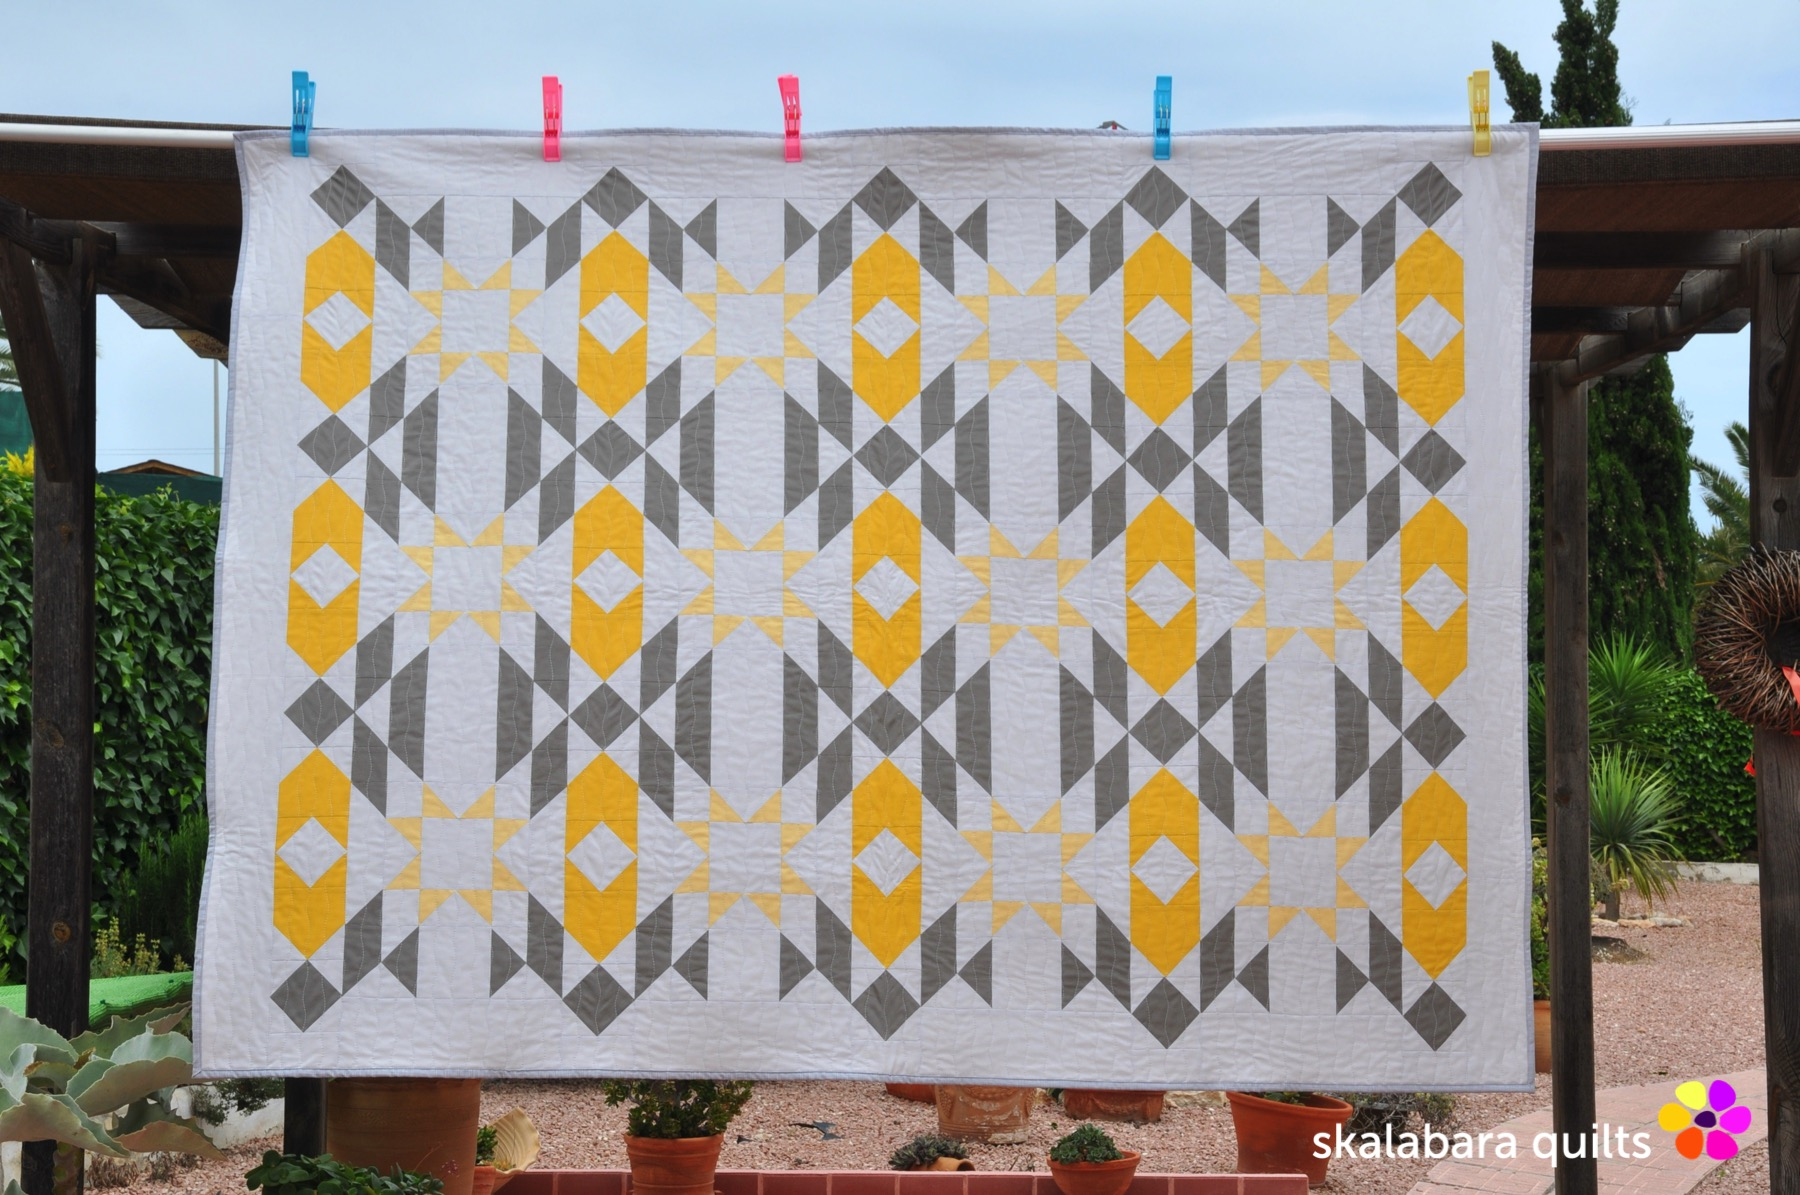 atmosphere quilt 1 - skalabara quilts